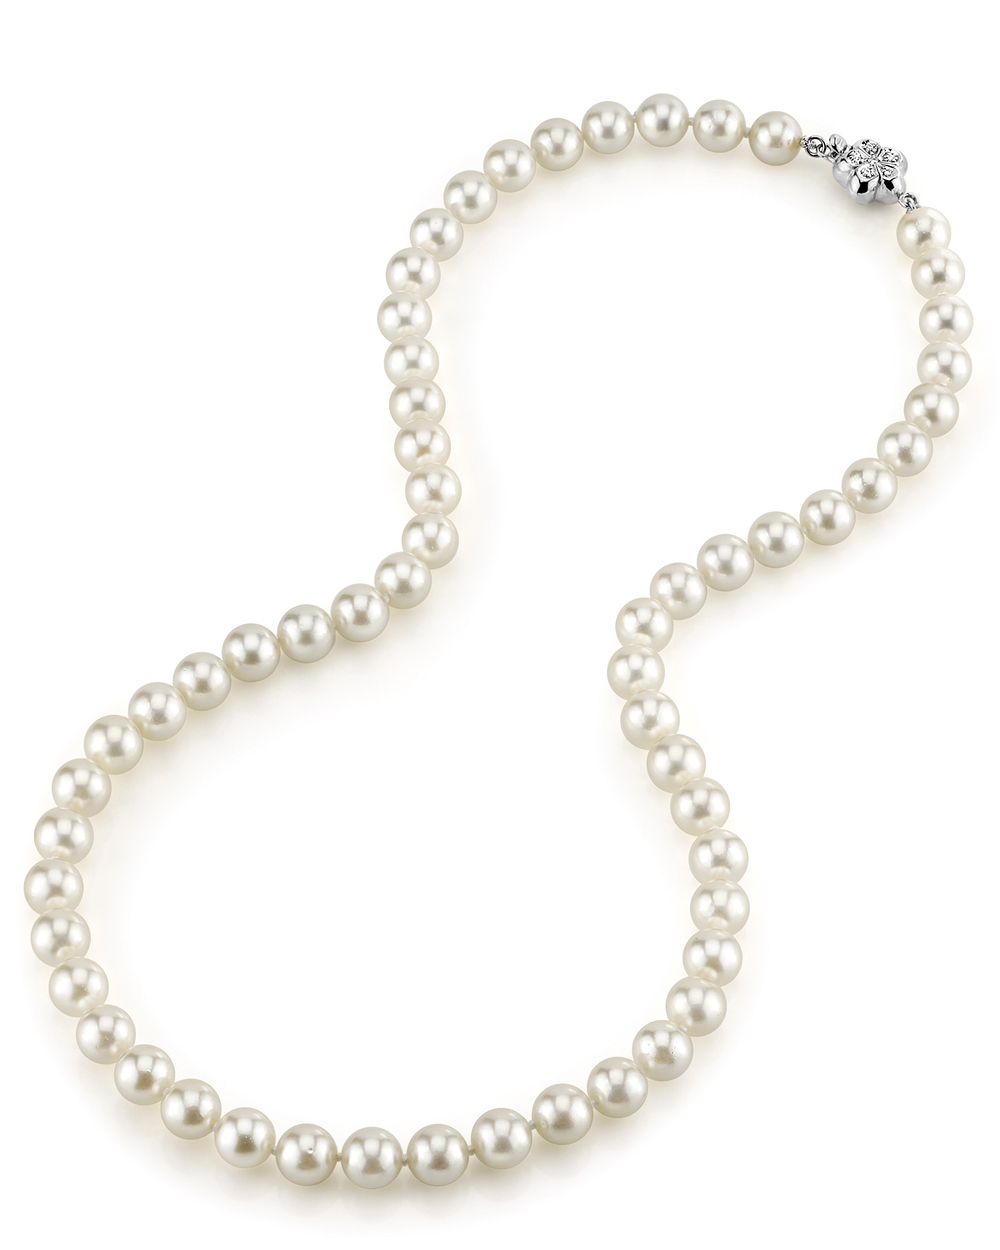 7.0-7.5mm Japanese Akoya White Pearl Necklace- AAA Quality